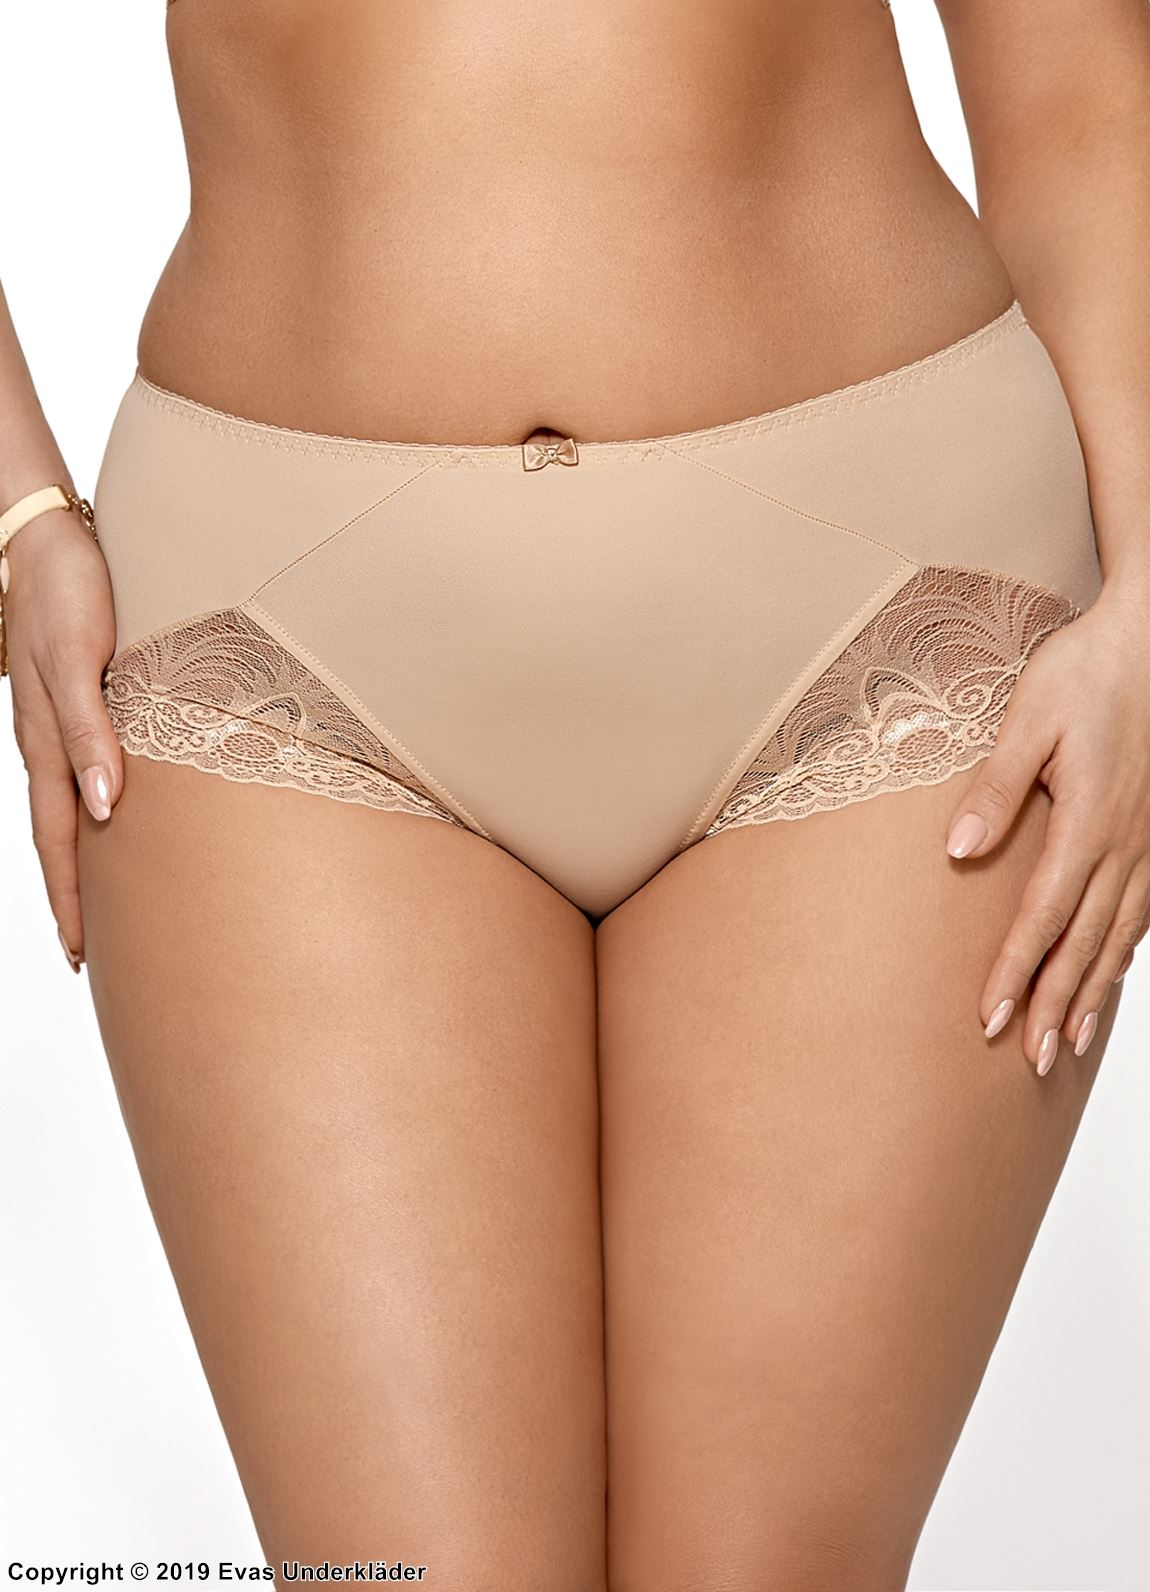 High waist panty, elastic microfiber, lace inlays, light pattern